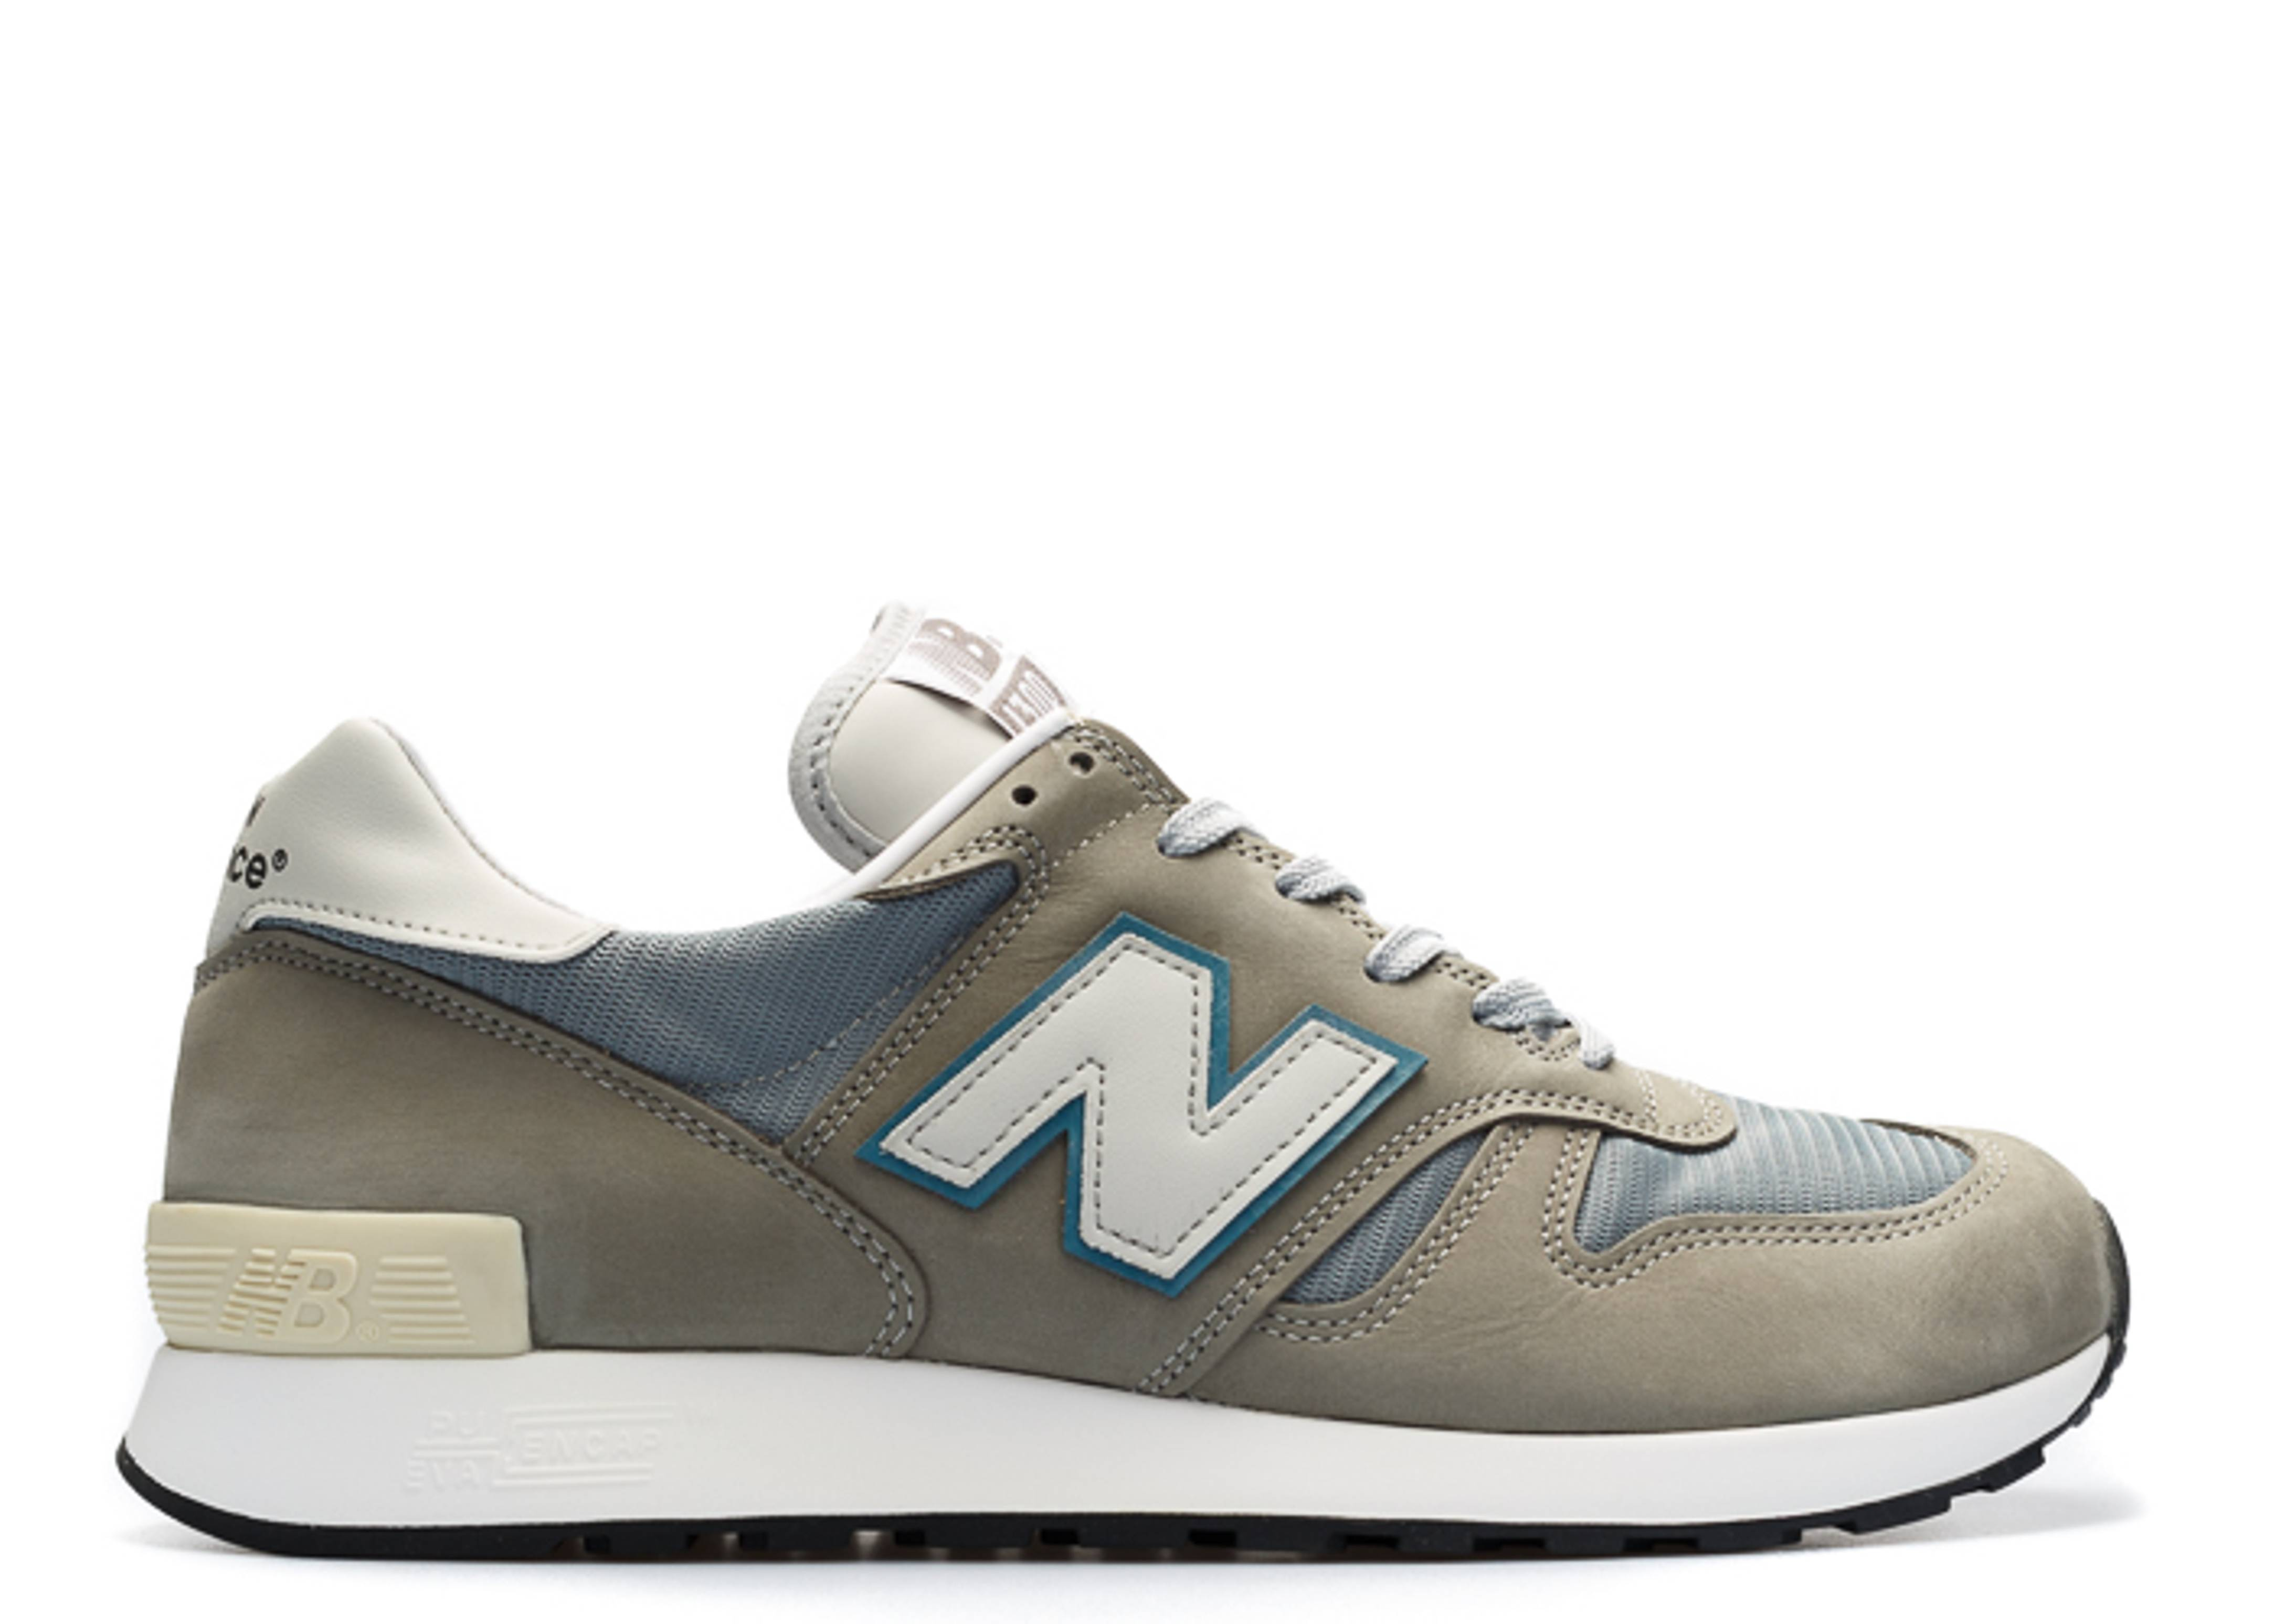 Scarpe Männer New Balance M1300 Made In The Usa Moby Dick